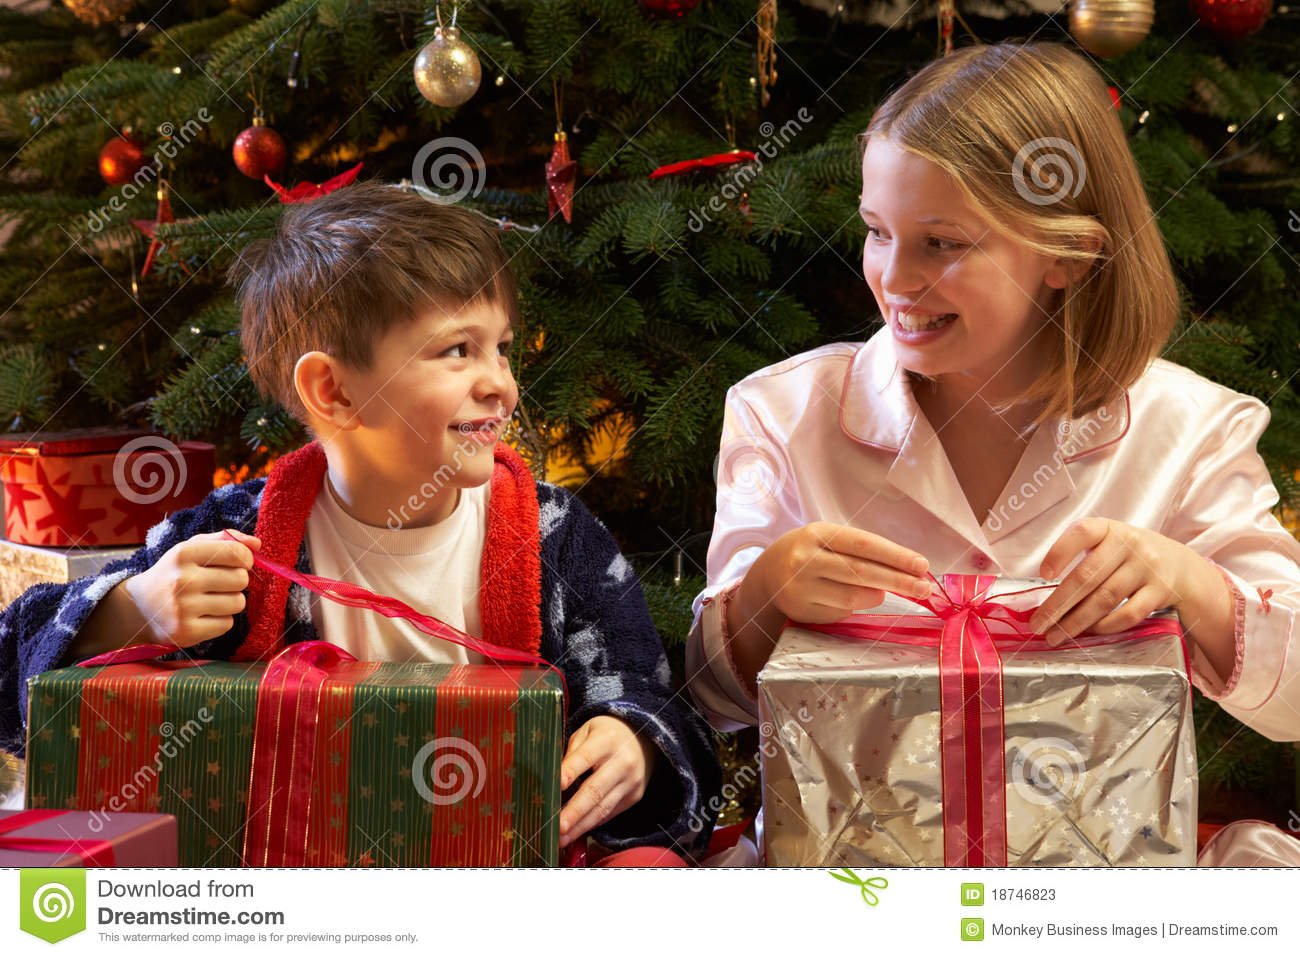 Children Opening Christmas Presents Stock Photo - Image: 73348691